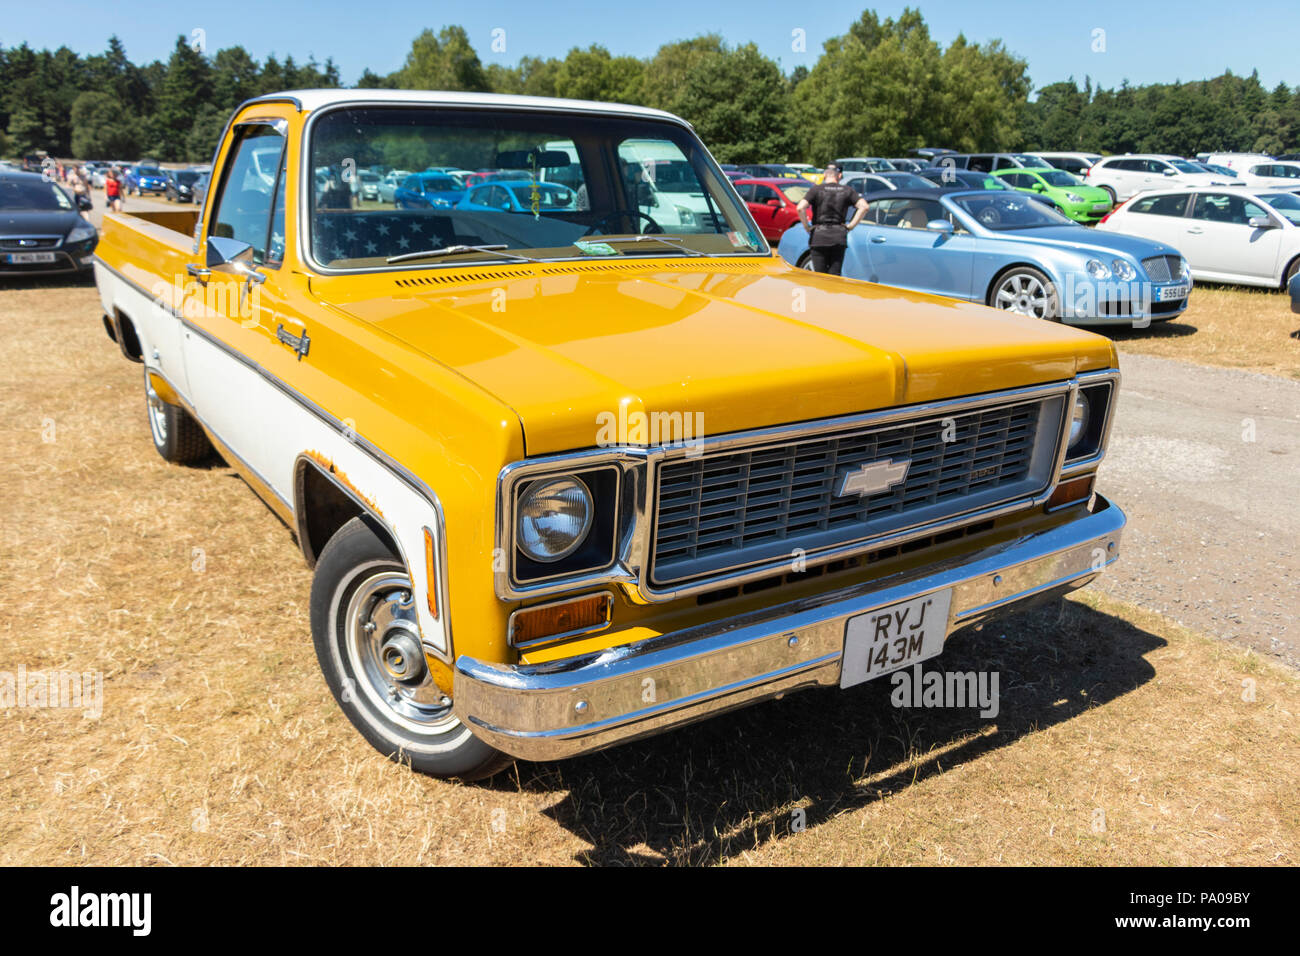 yellow 1970s Chevrolet pick up truck - Stock Image